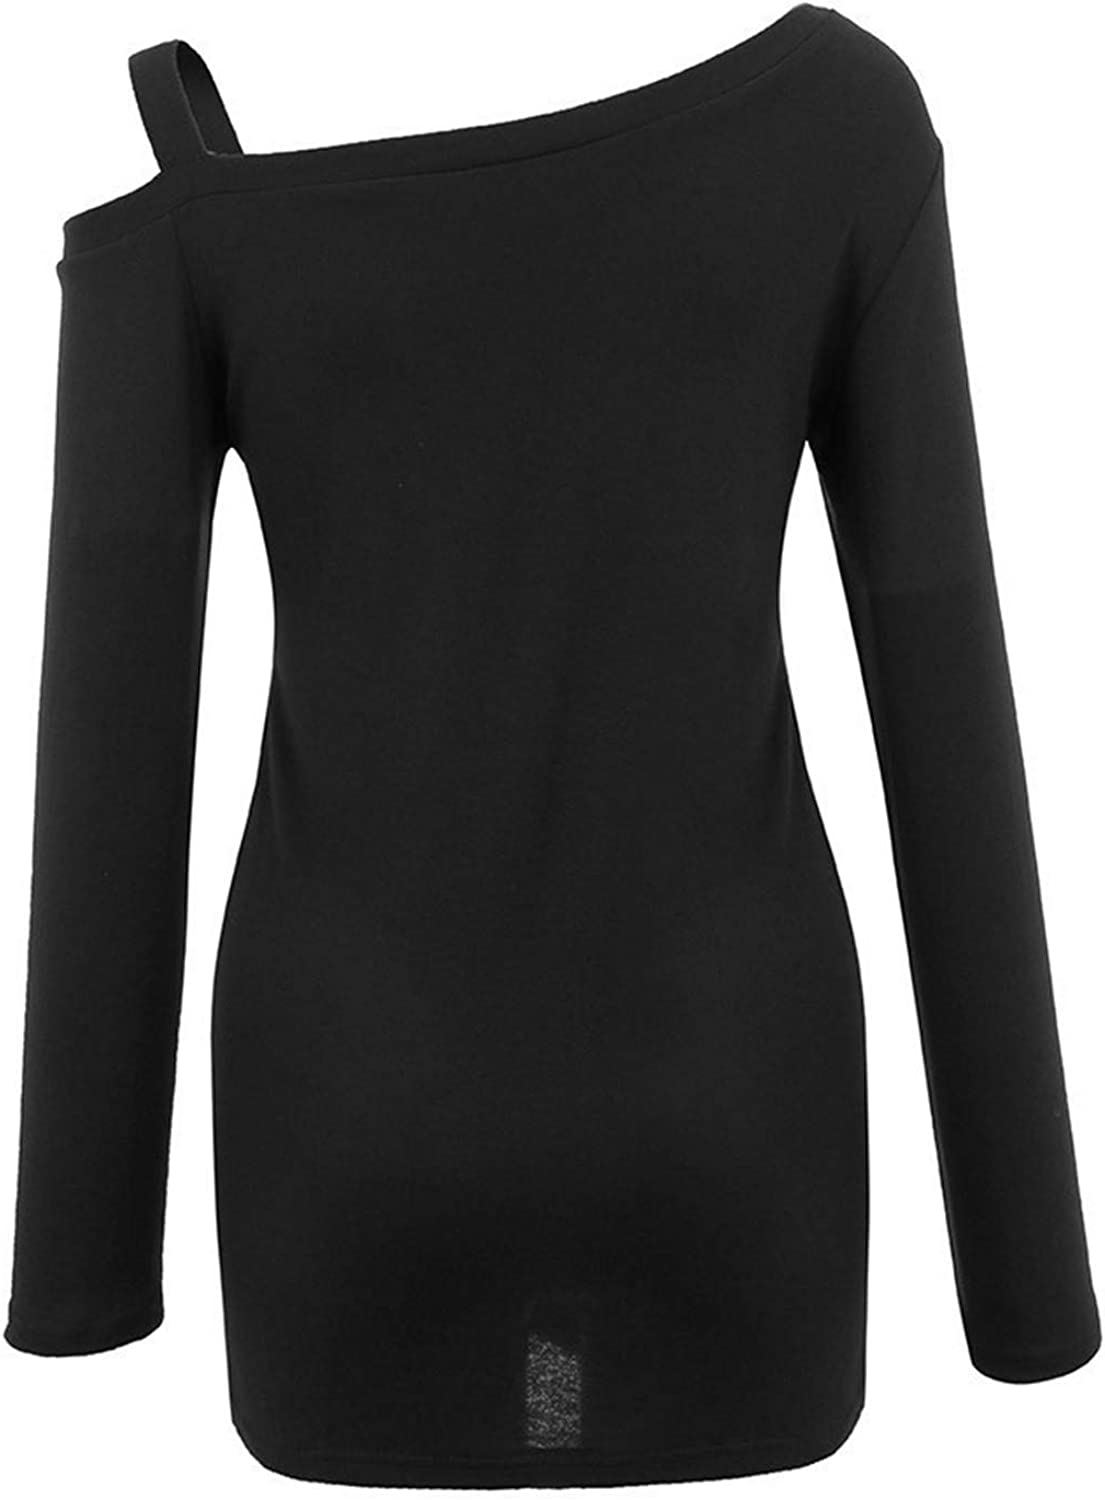 Womens Casual Soft Long Sleeves O Neck Knot Side Twists Blouse Top T-Shirt